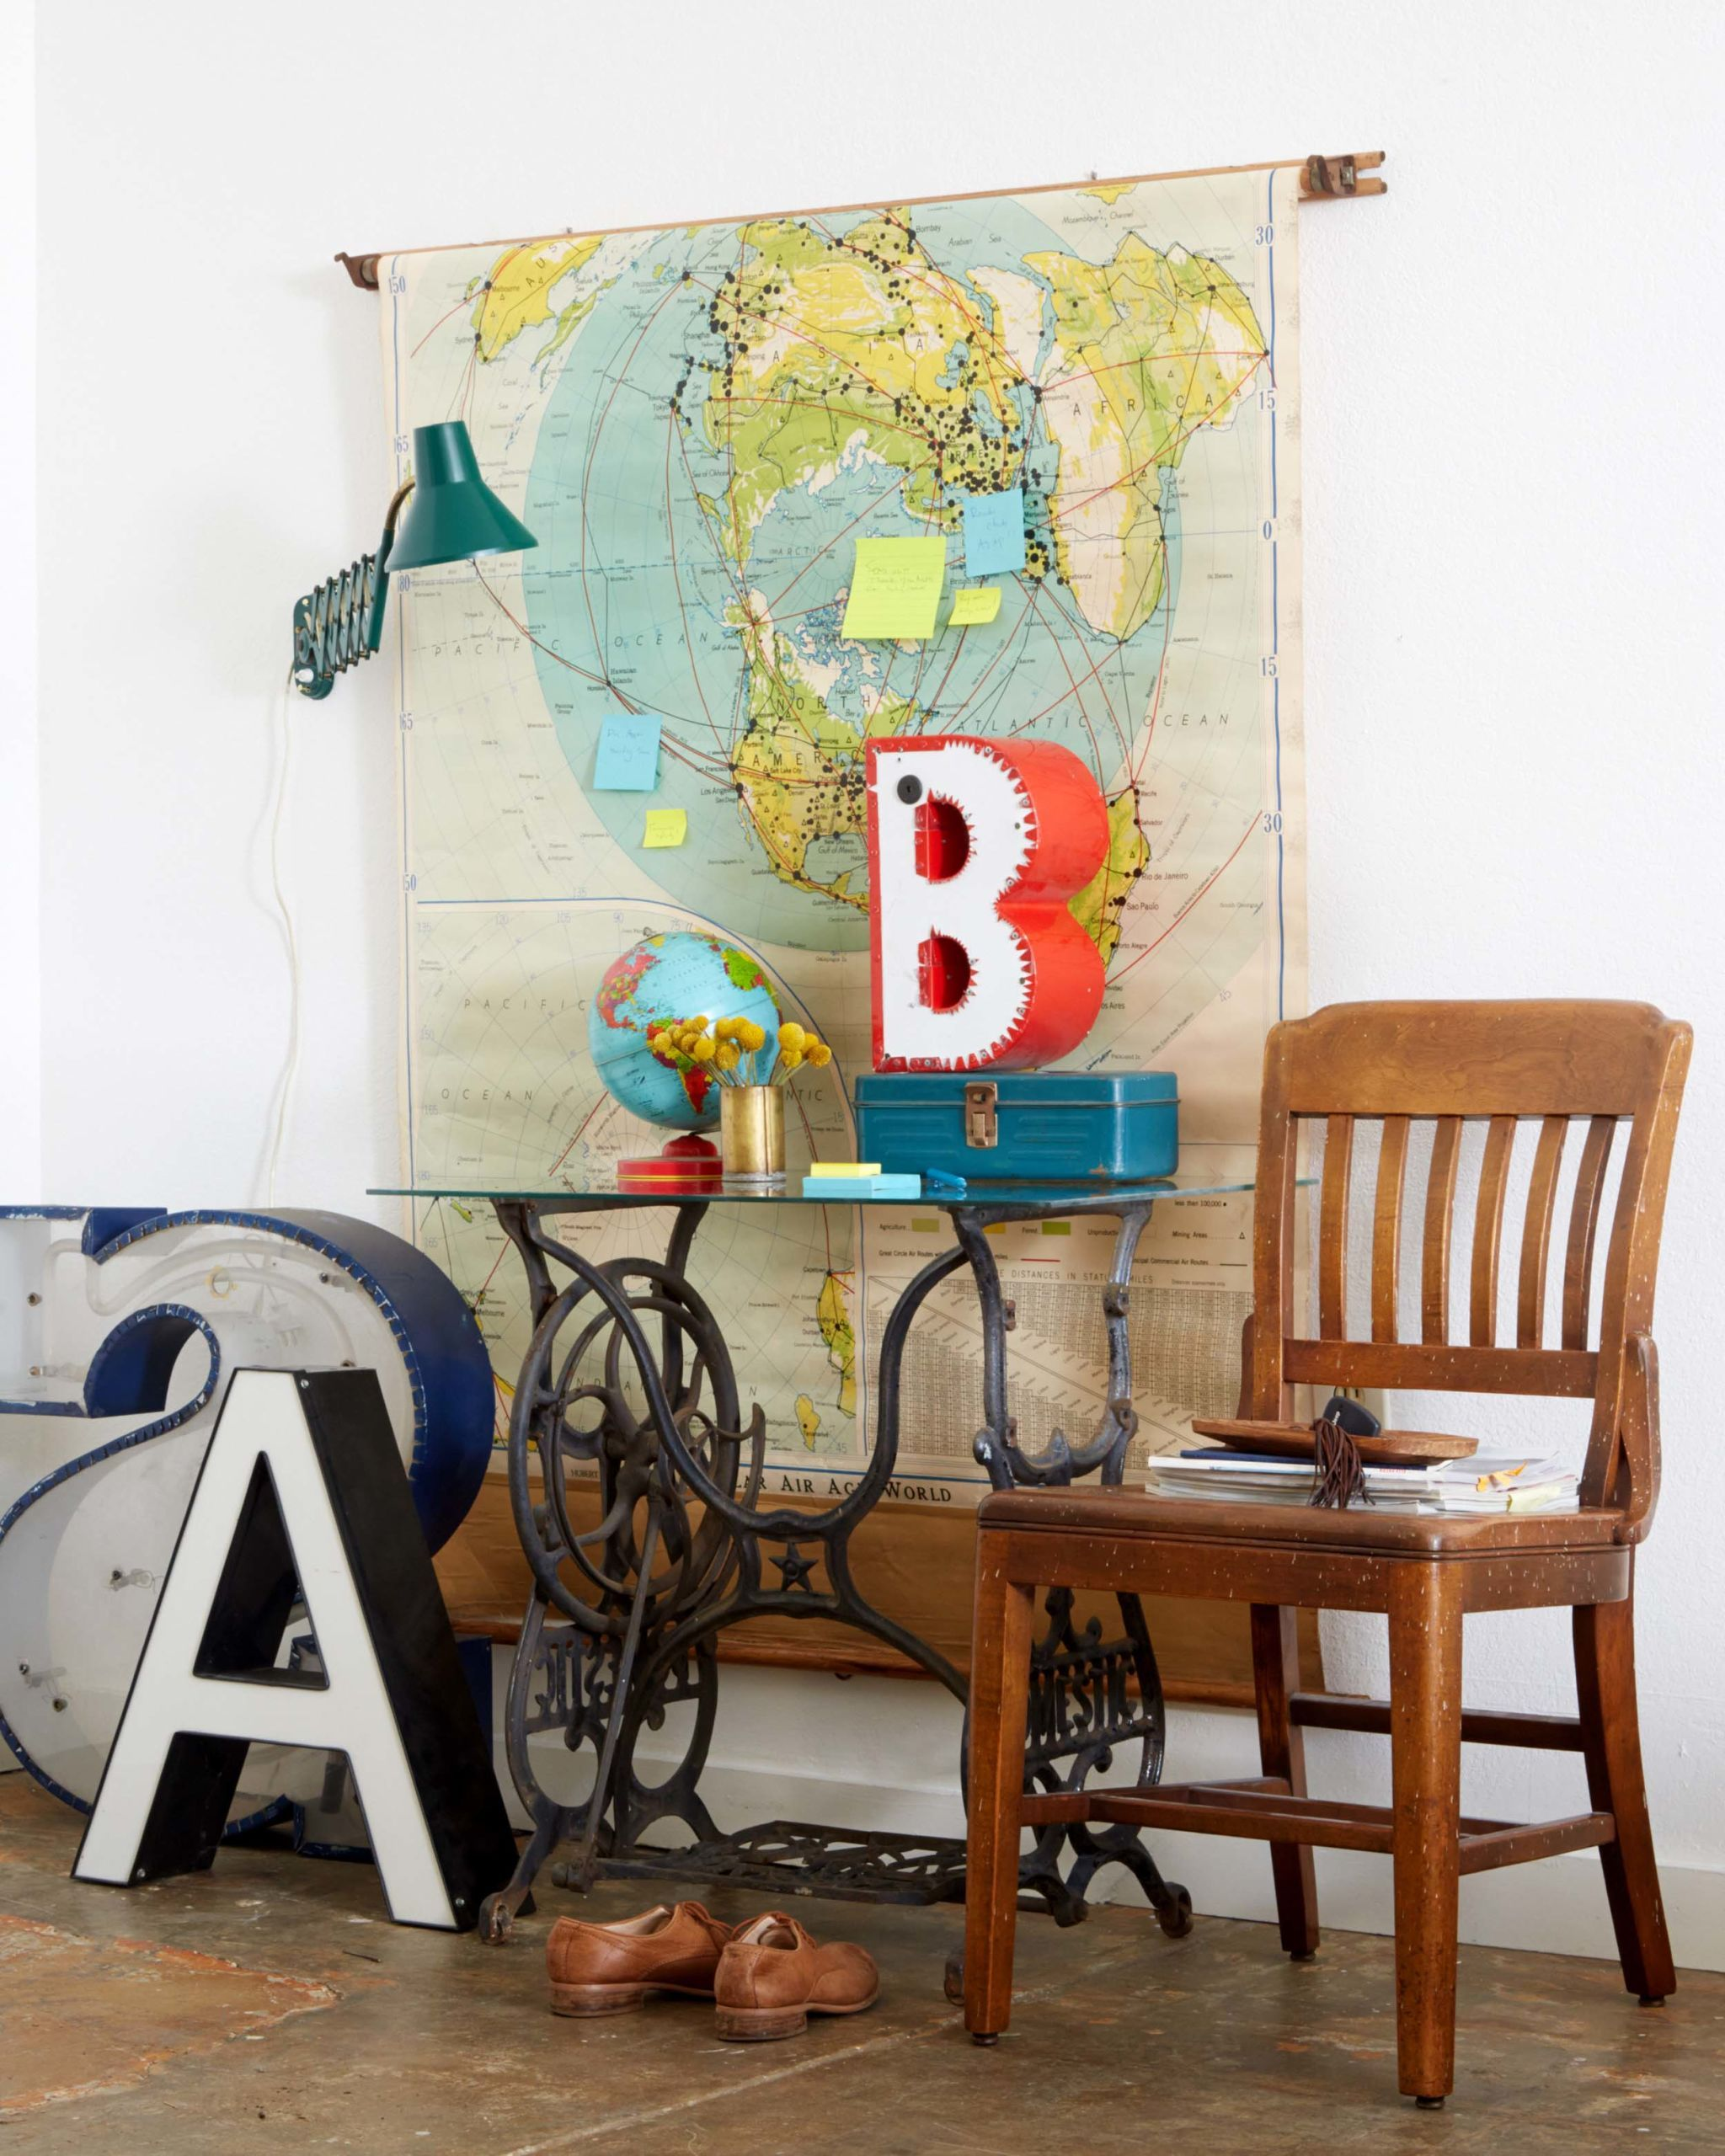 Home Decor Styles Quiz: How To Find Your Style (Quiz)